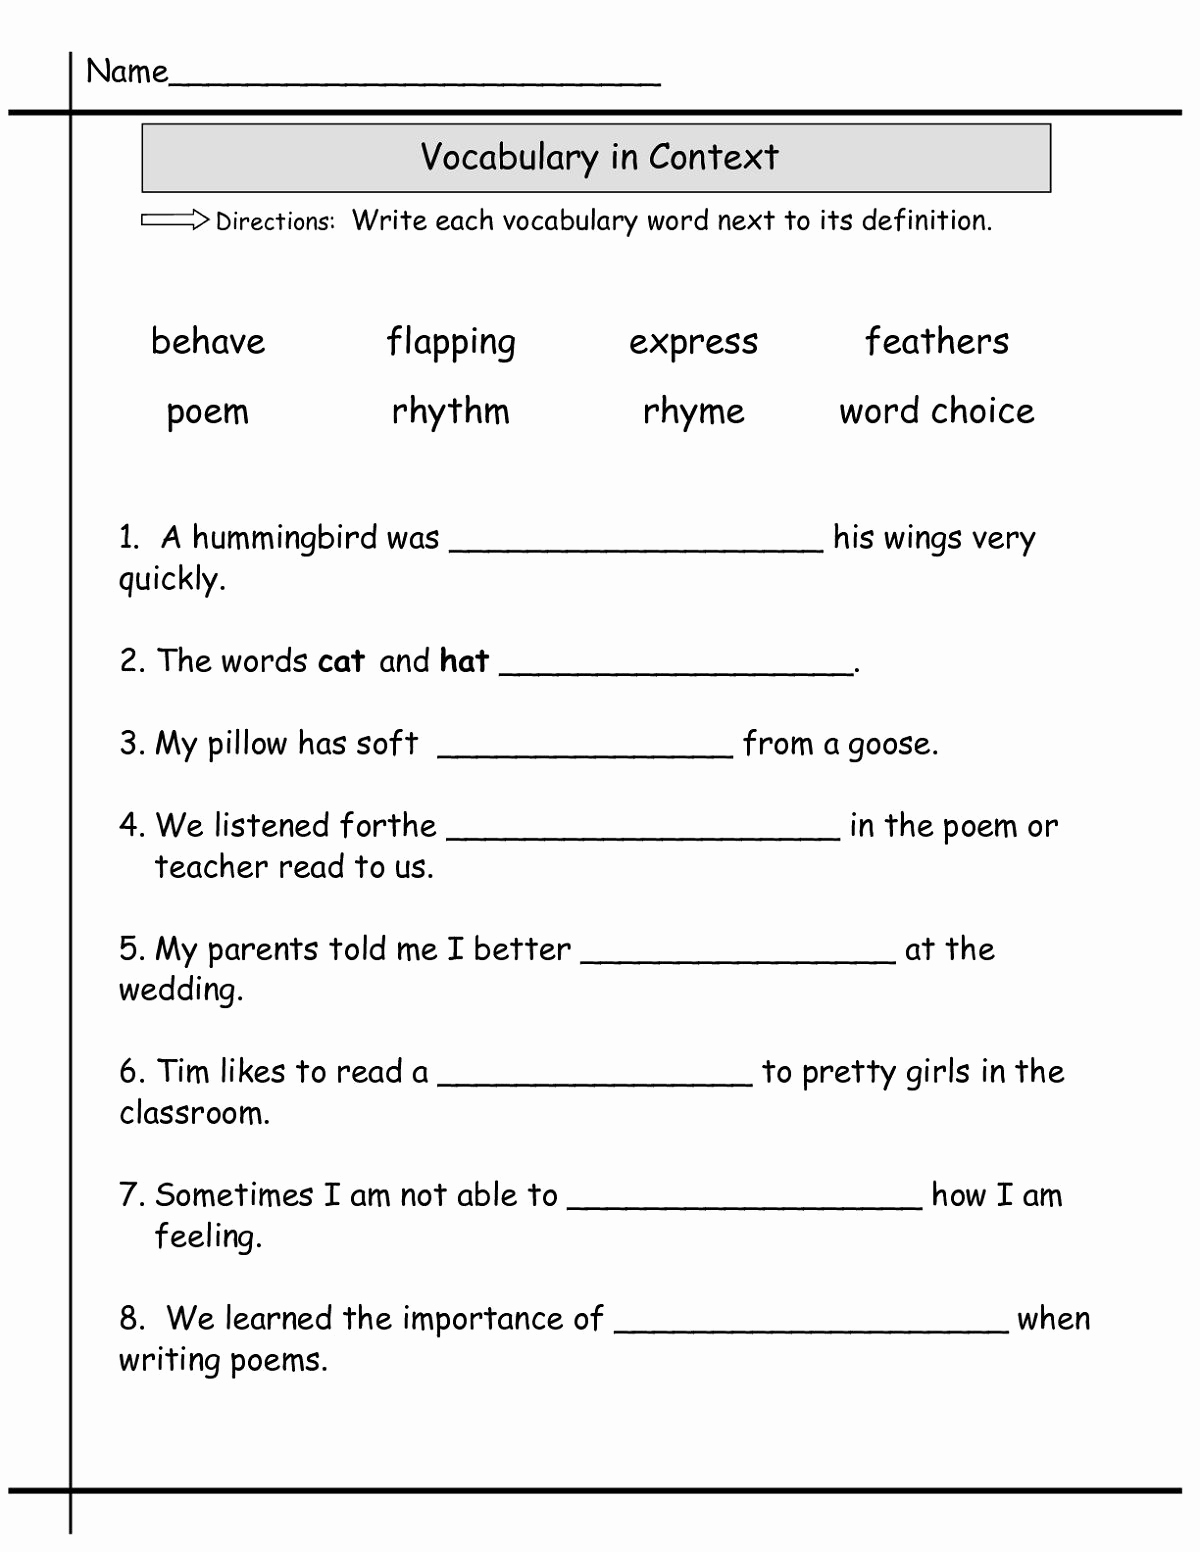 2nd Grade Grammar Worksheets Free Fresh 2nd Grade English Worksheets Best Coloring Pages for Kids